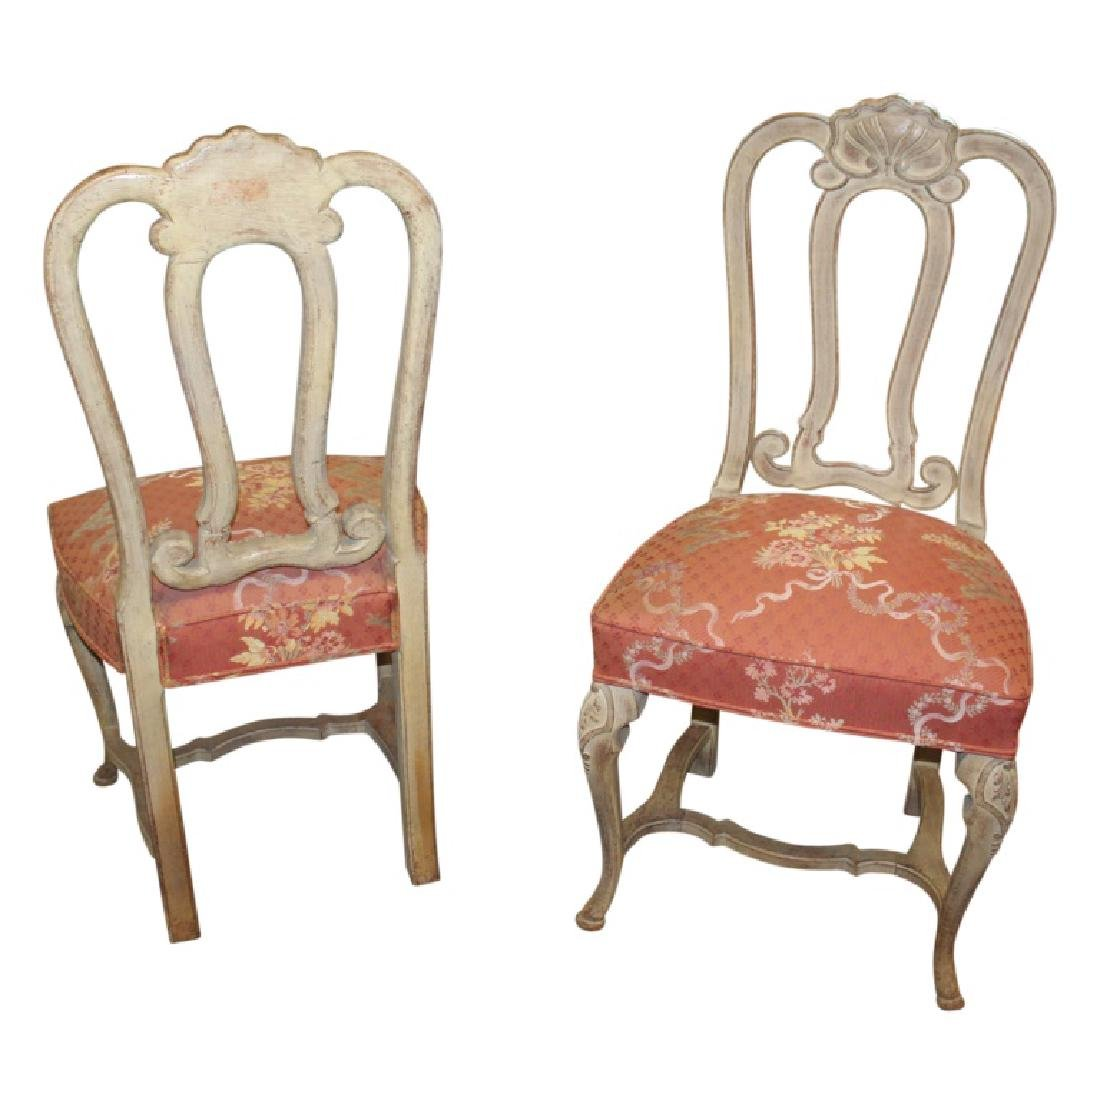 French Upholstered Dining Chairs - 8PCS - 5